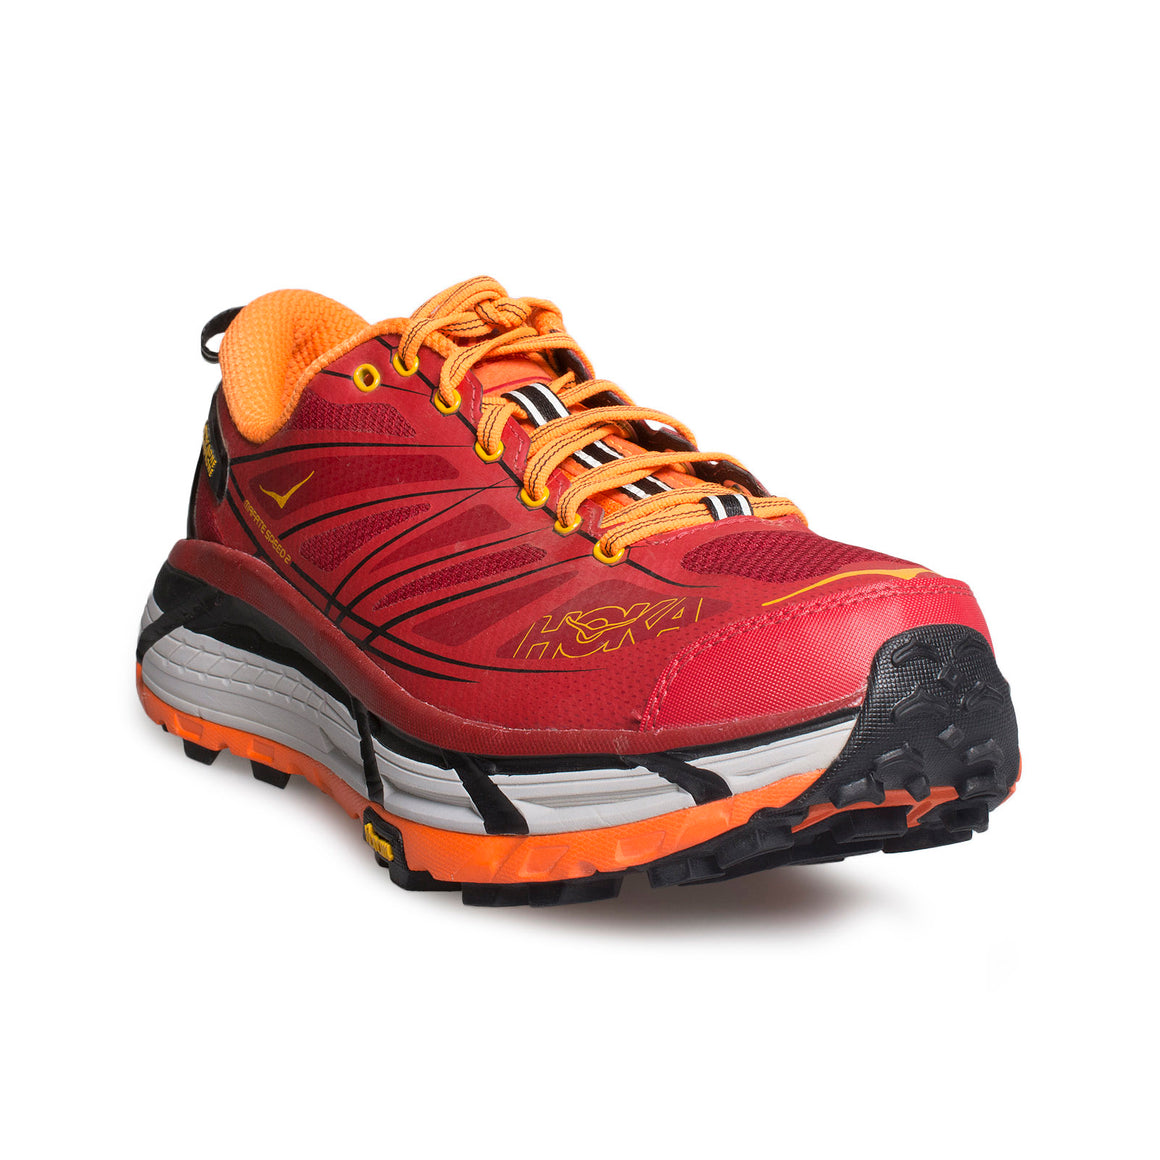 HOKA Mafate Speed 2 True Red / Chili Pepper Running Shoes - Men's